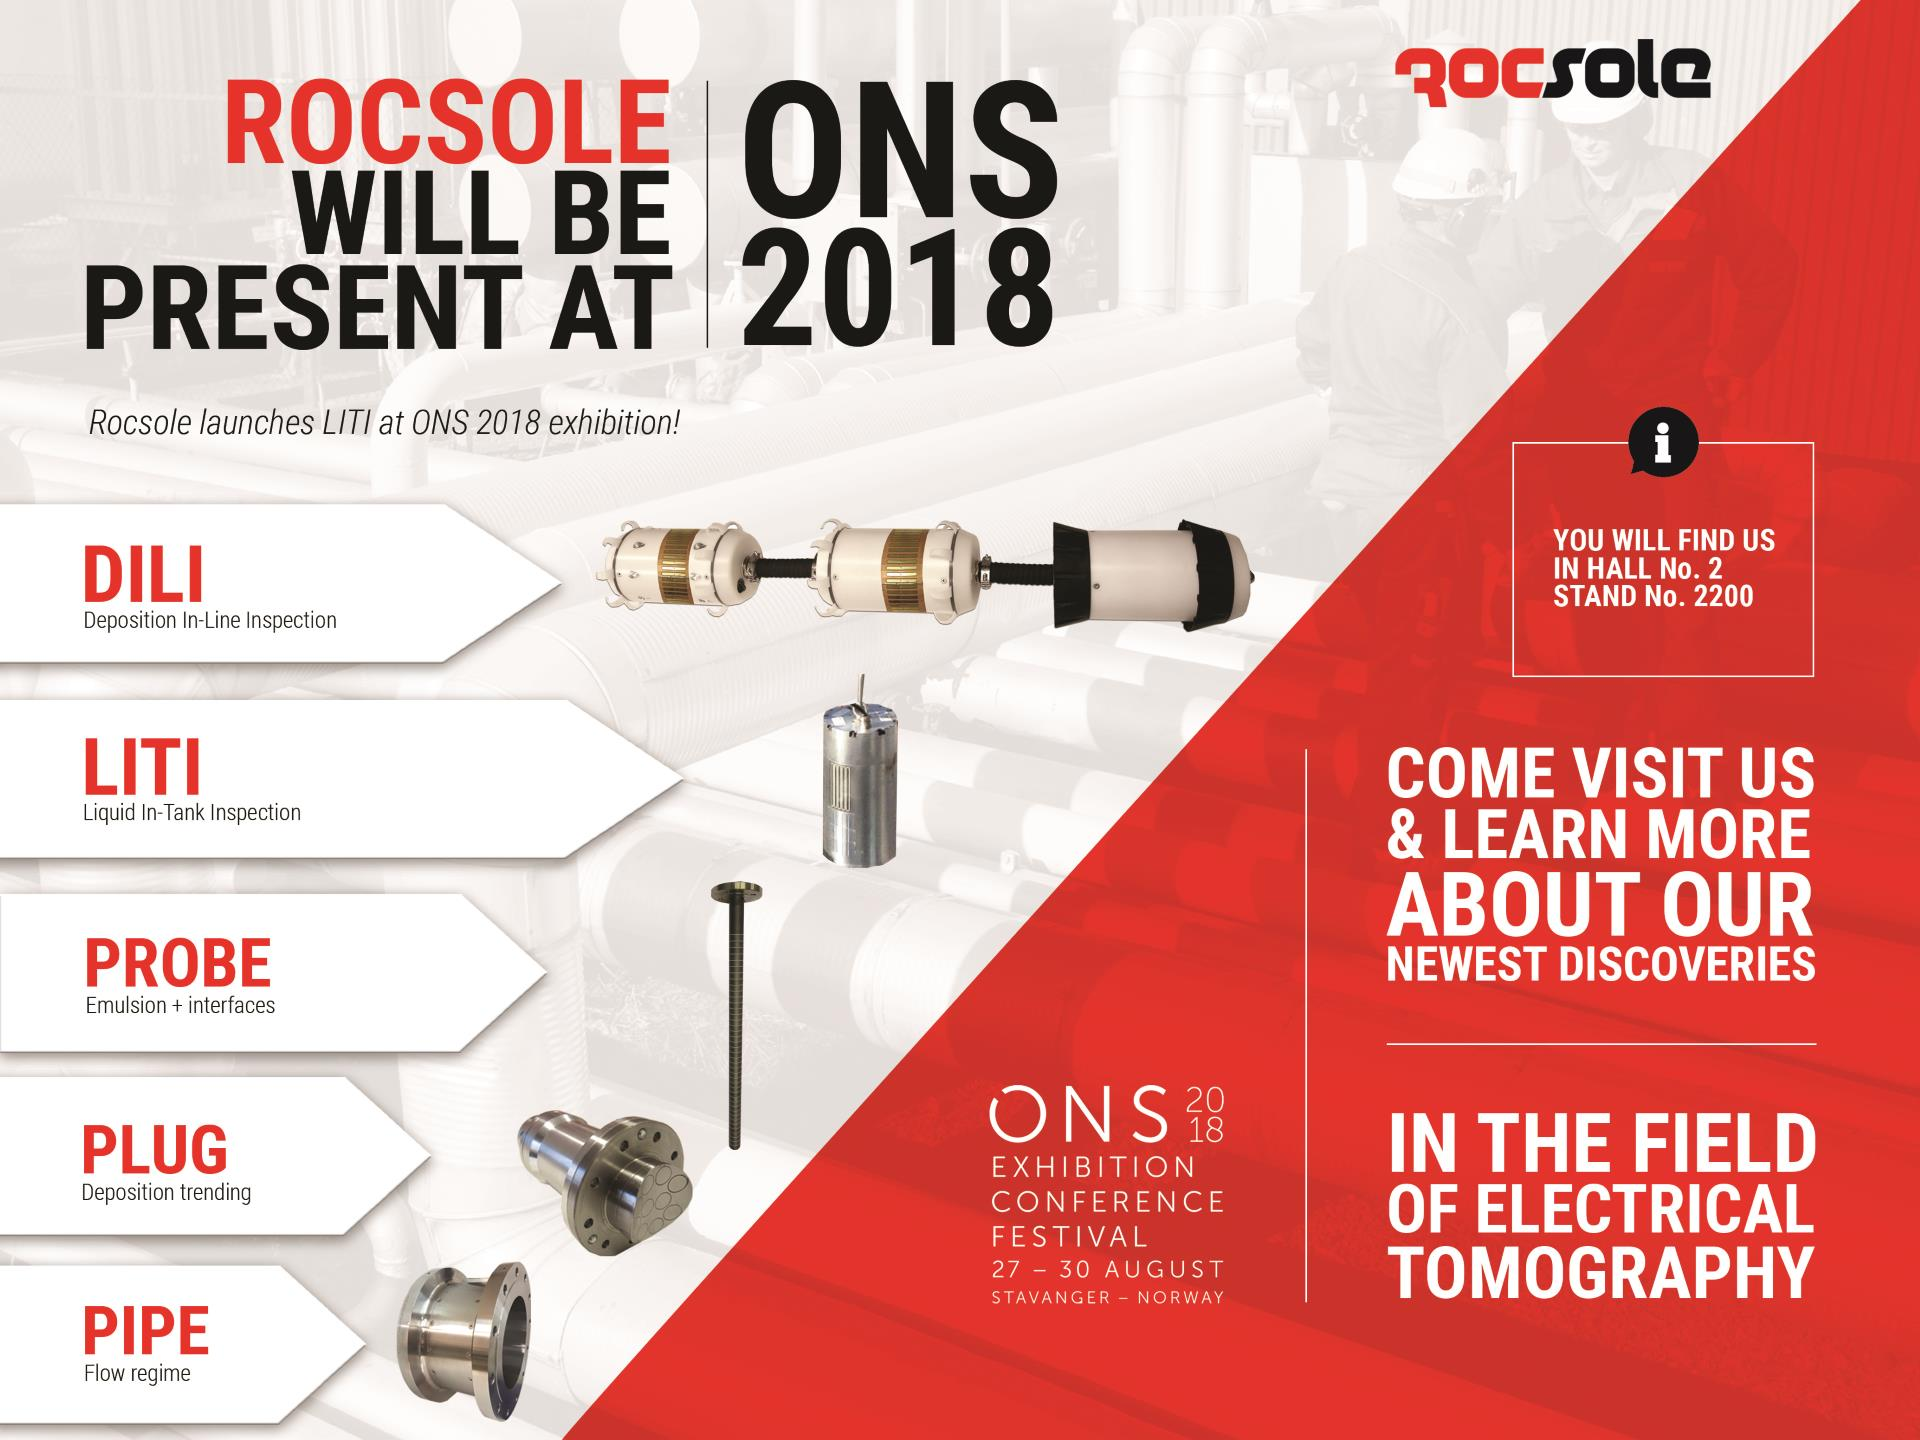 Rocsole Launches Liquid In-Tank Inspection at ONS 2018 Exhibition